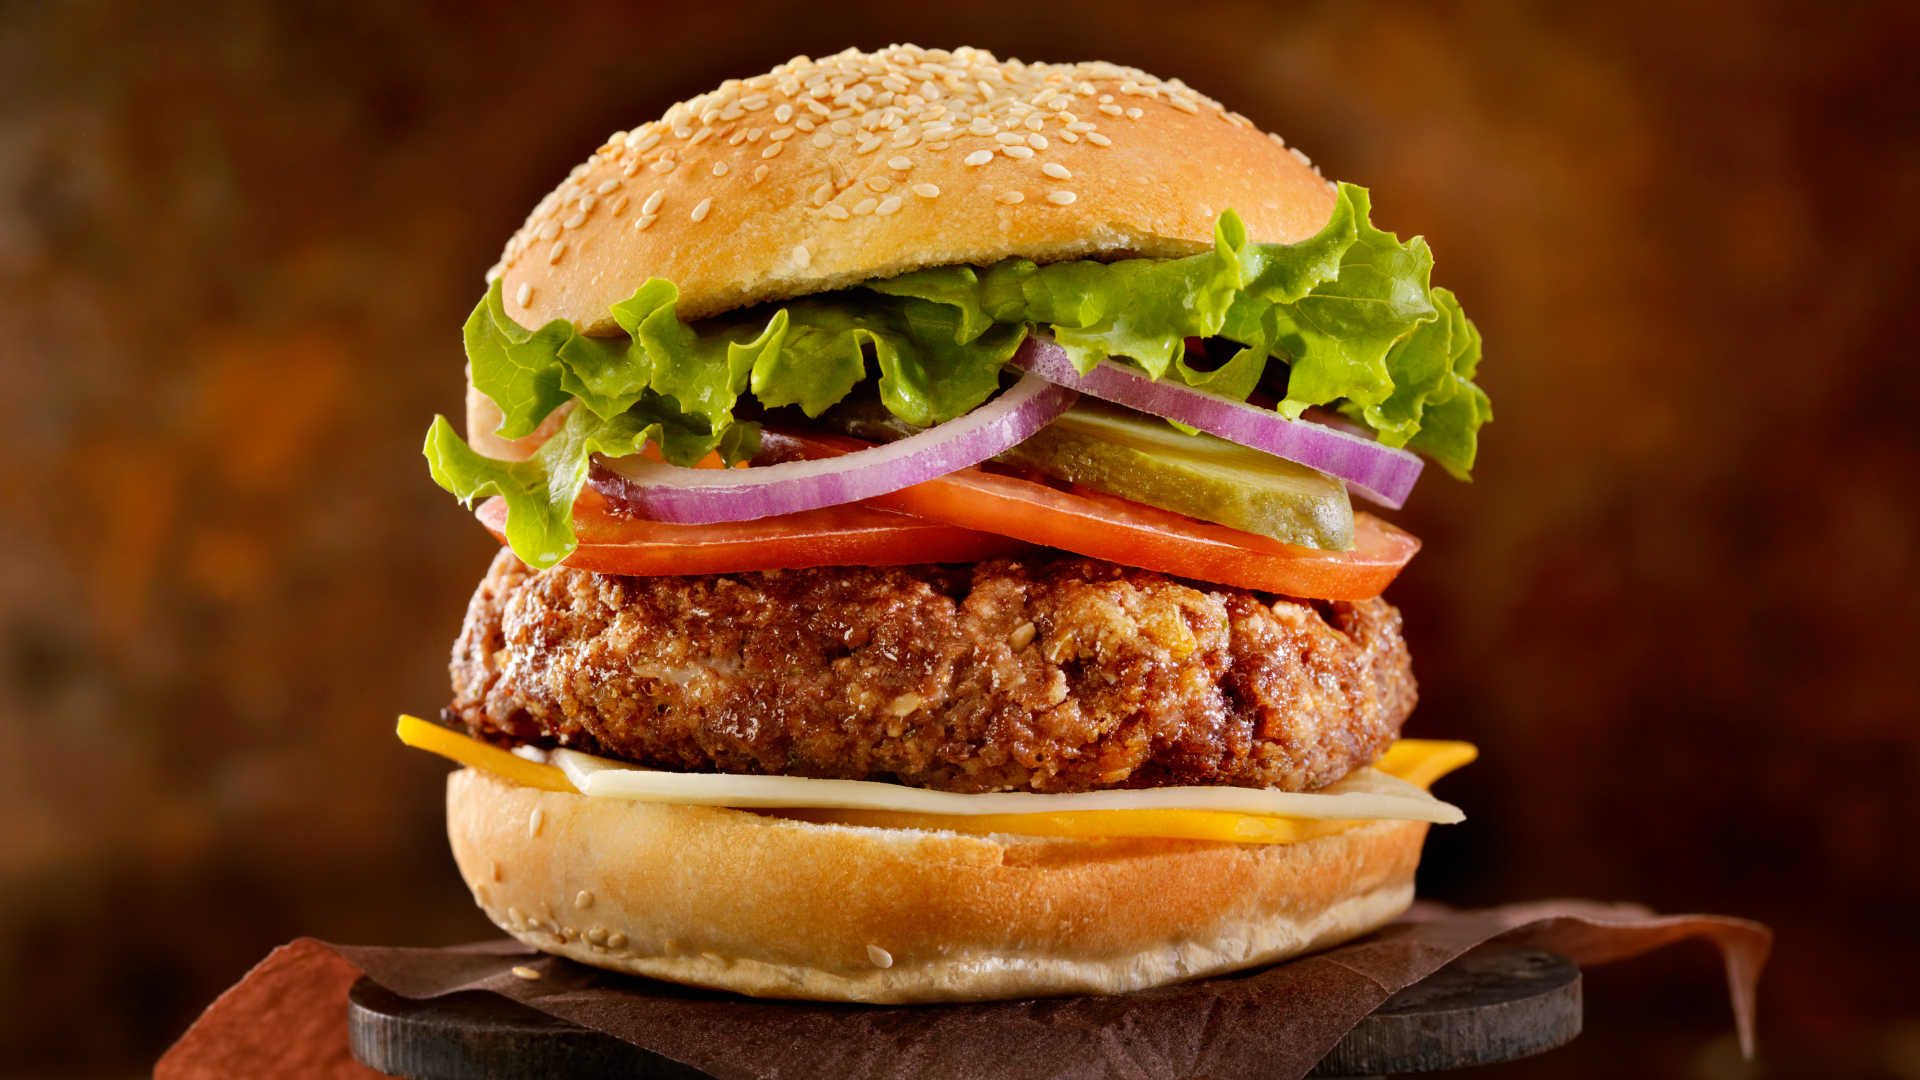 Large Ultimate Burger with Lettuce, Onion, Pickles, and Tomatoes